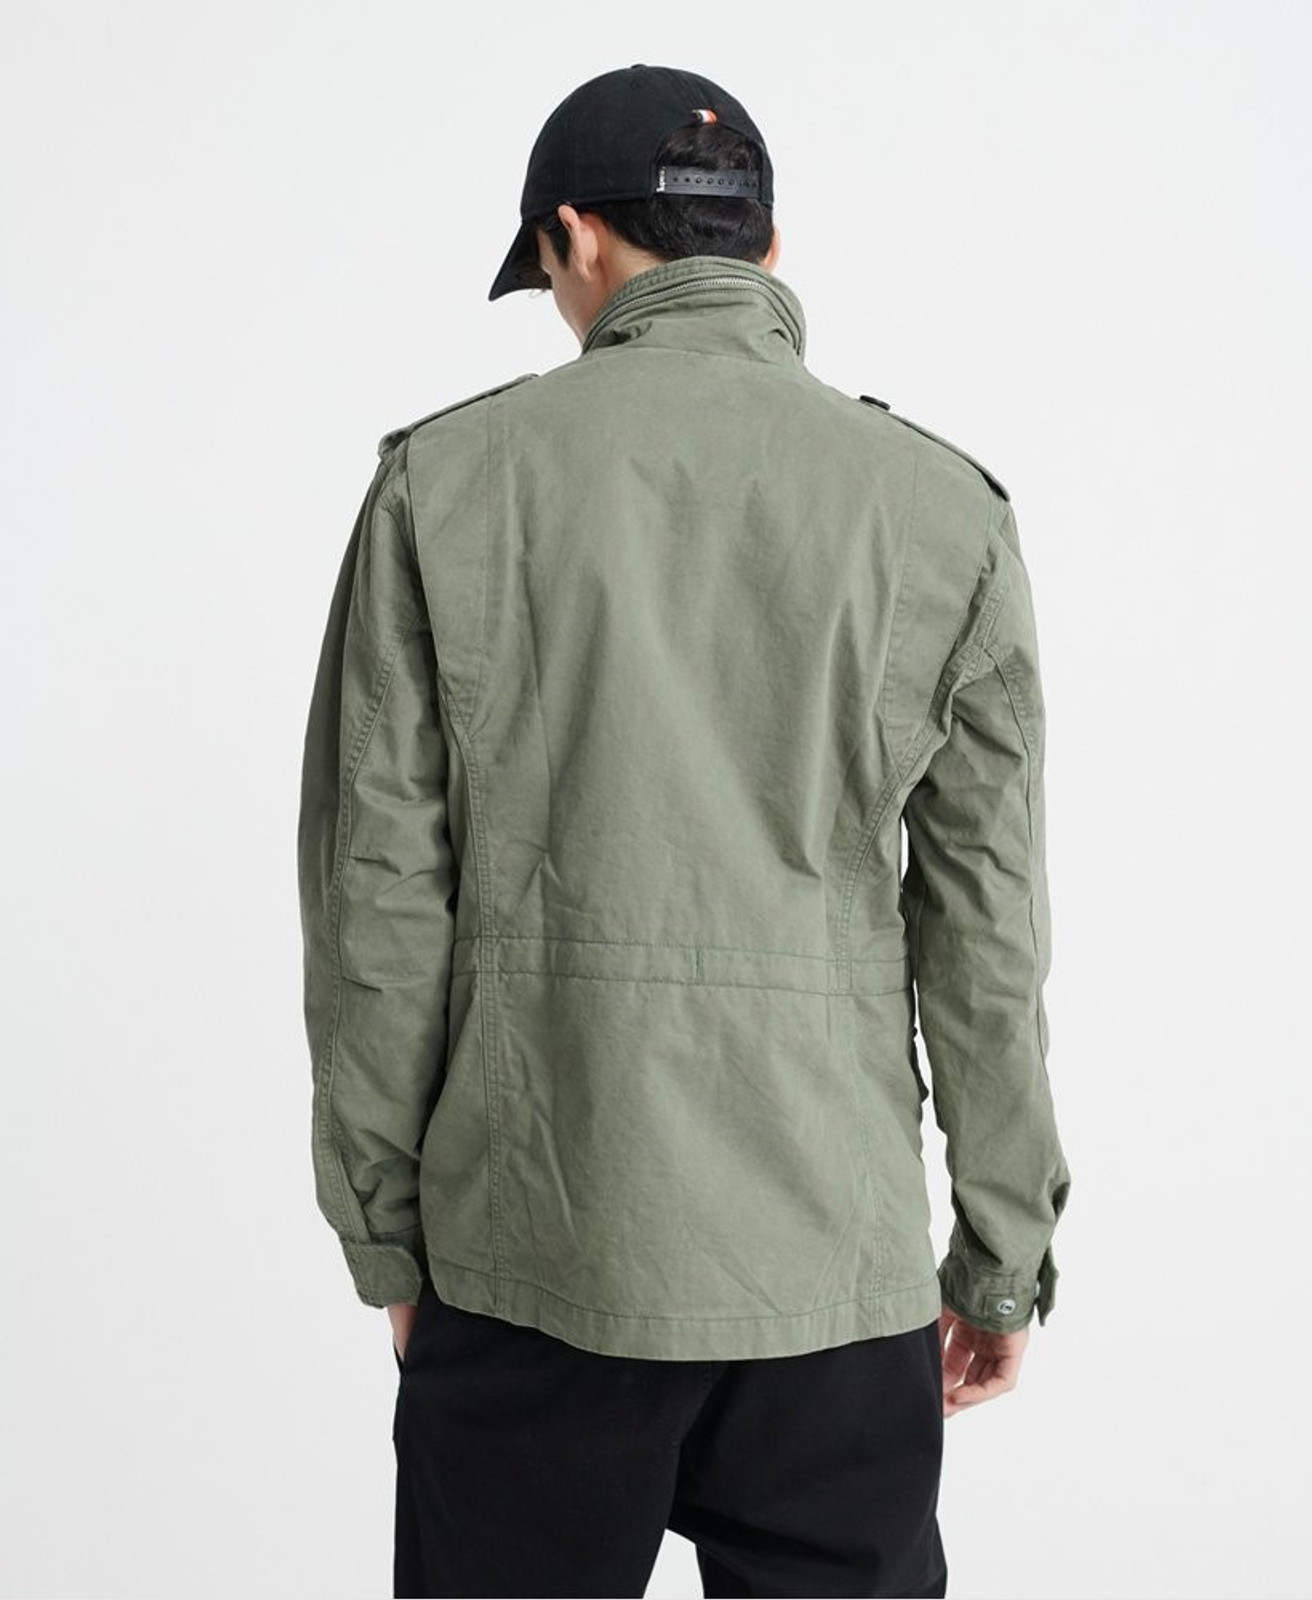 Superdry Mens FIELD JACKET Green Military Jackets 3